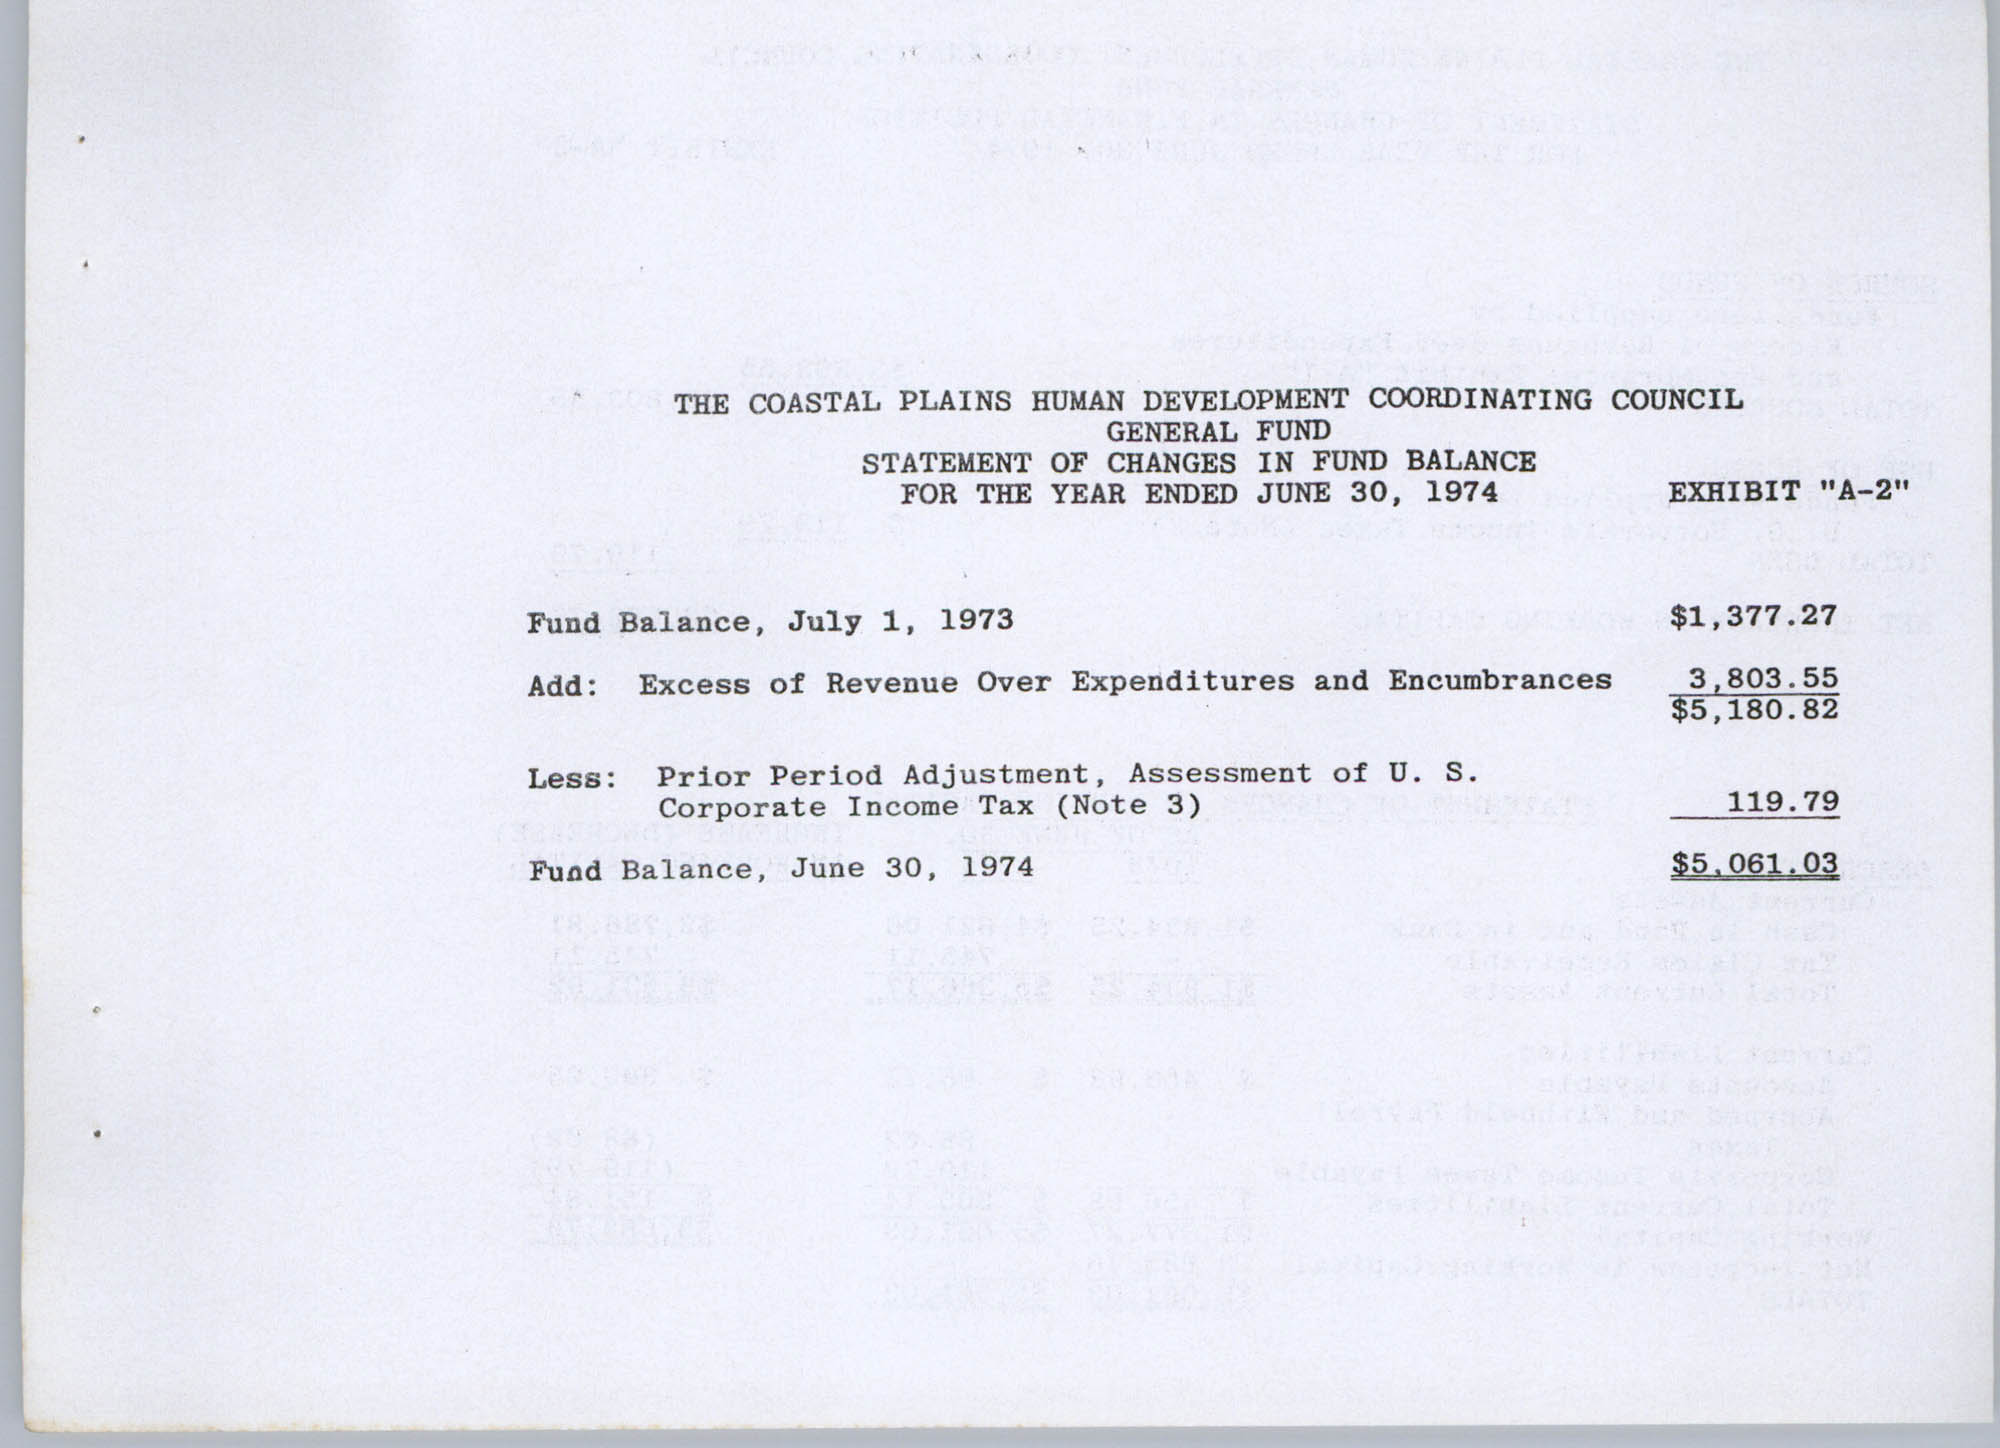 Coastal Plains Human Development Coordinating Council, 1974 Annual Report, Page 17